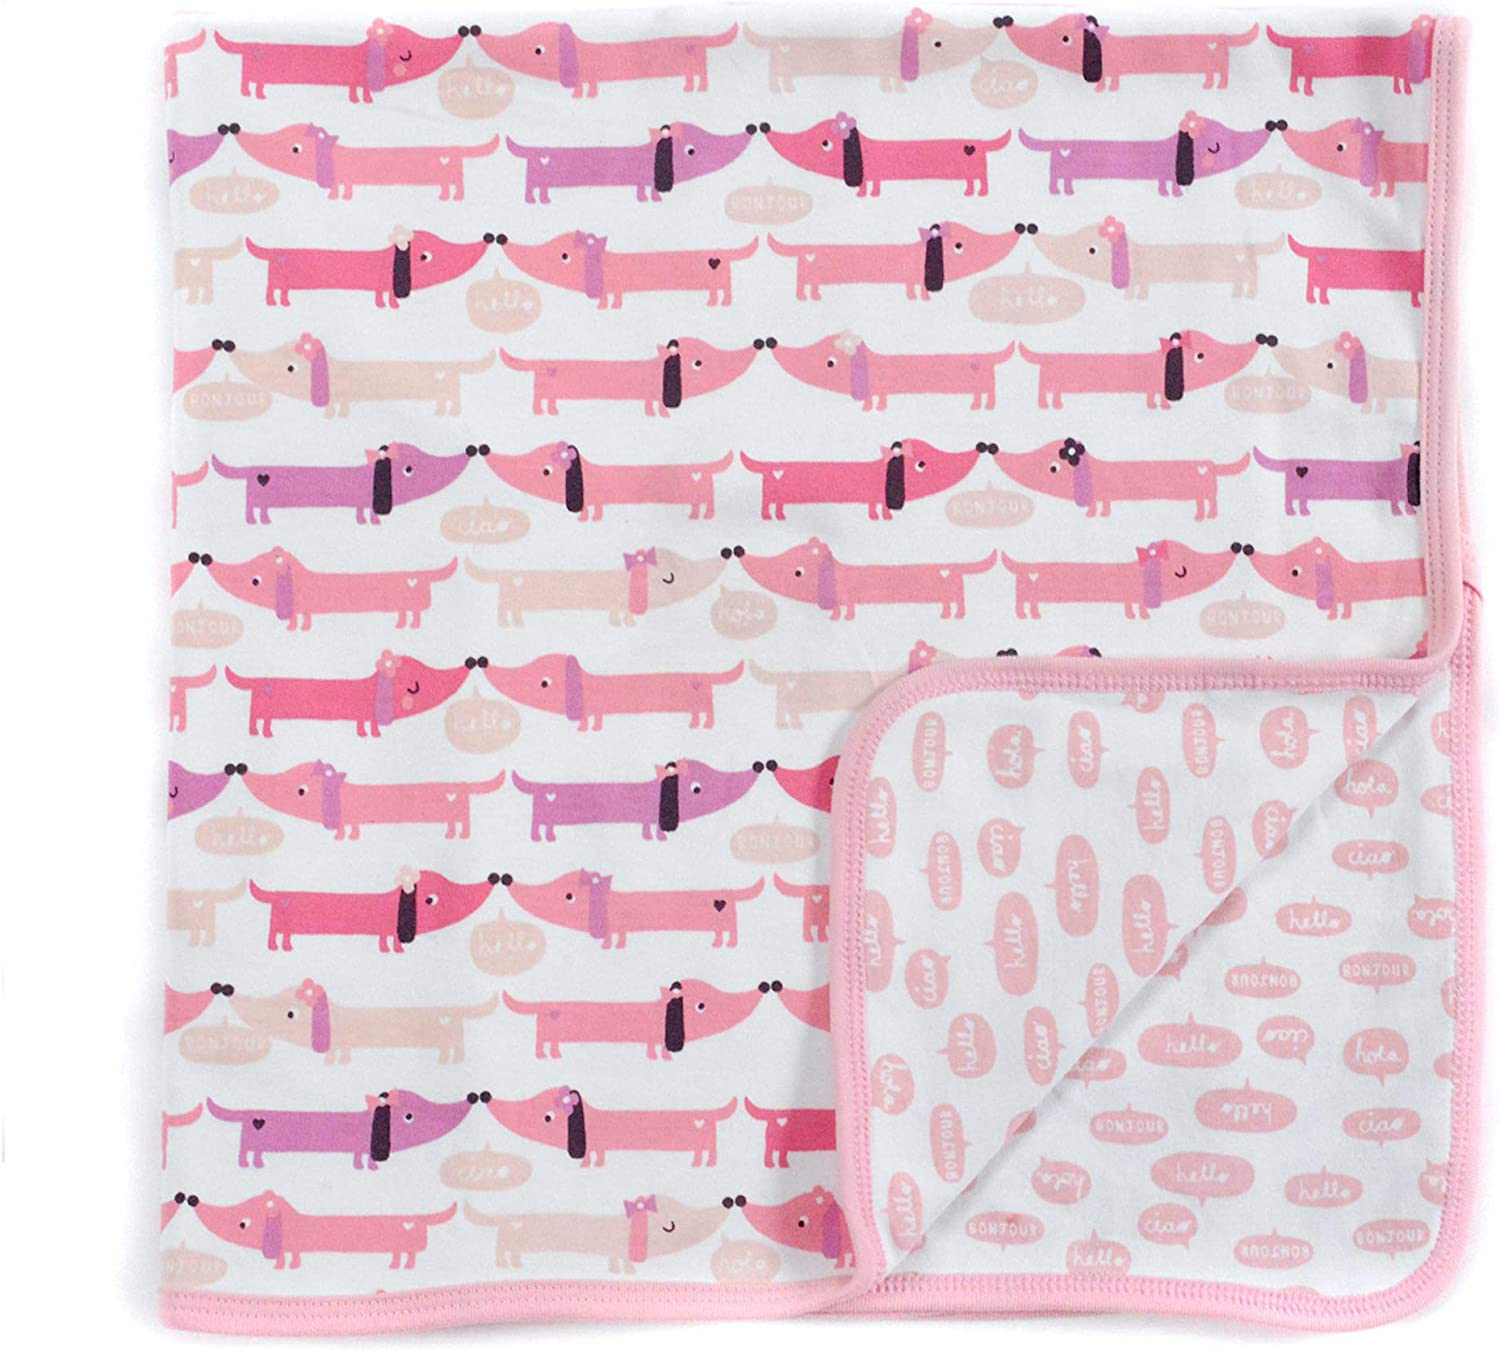 Magnificent Baby Magnetic 100% Challenge the lowest price of Japan Reversible Cotton Blanket 55% OFF